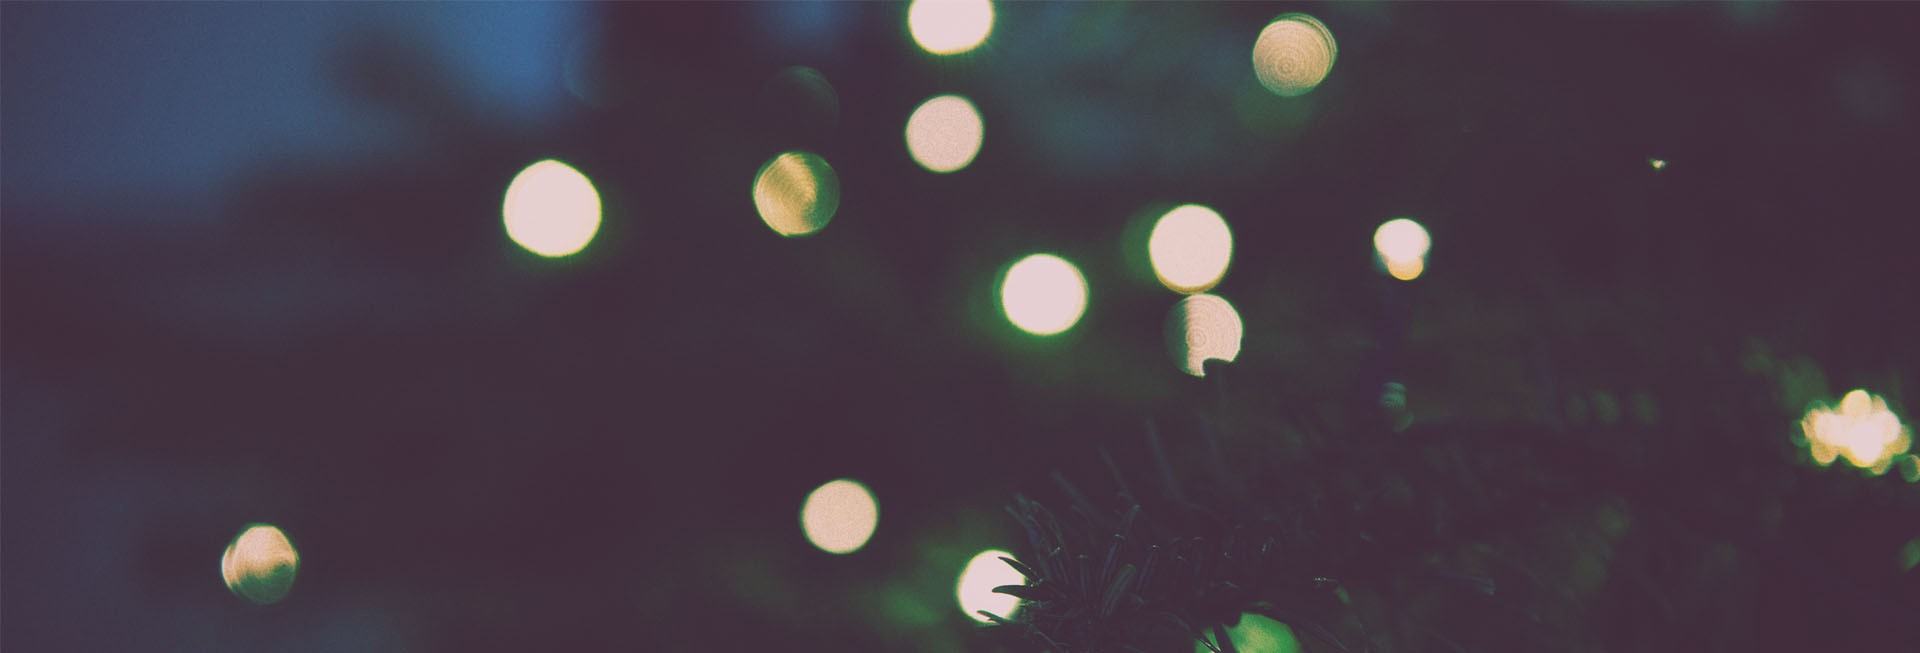 Christmas Tree Lights Church Website Banner